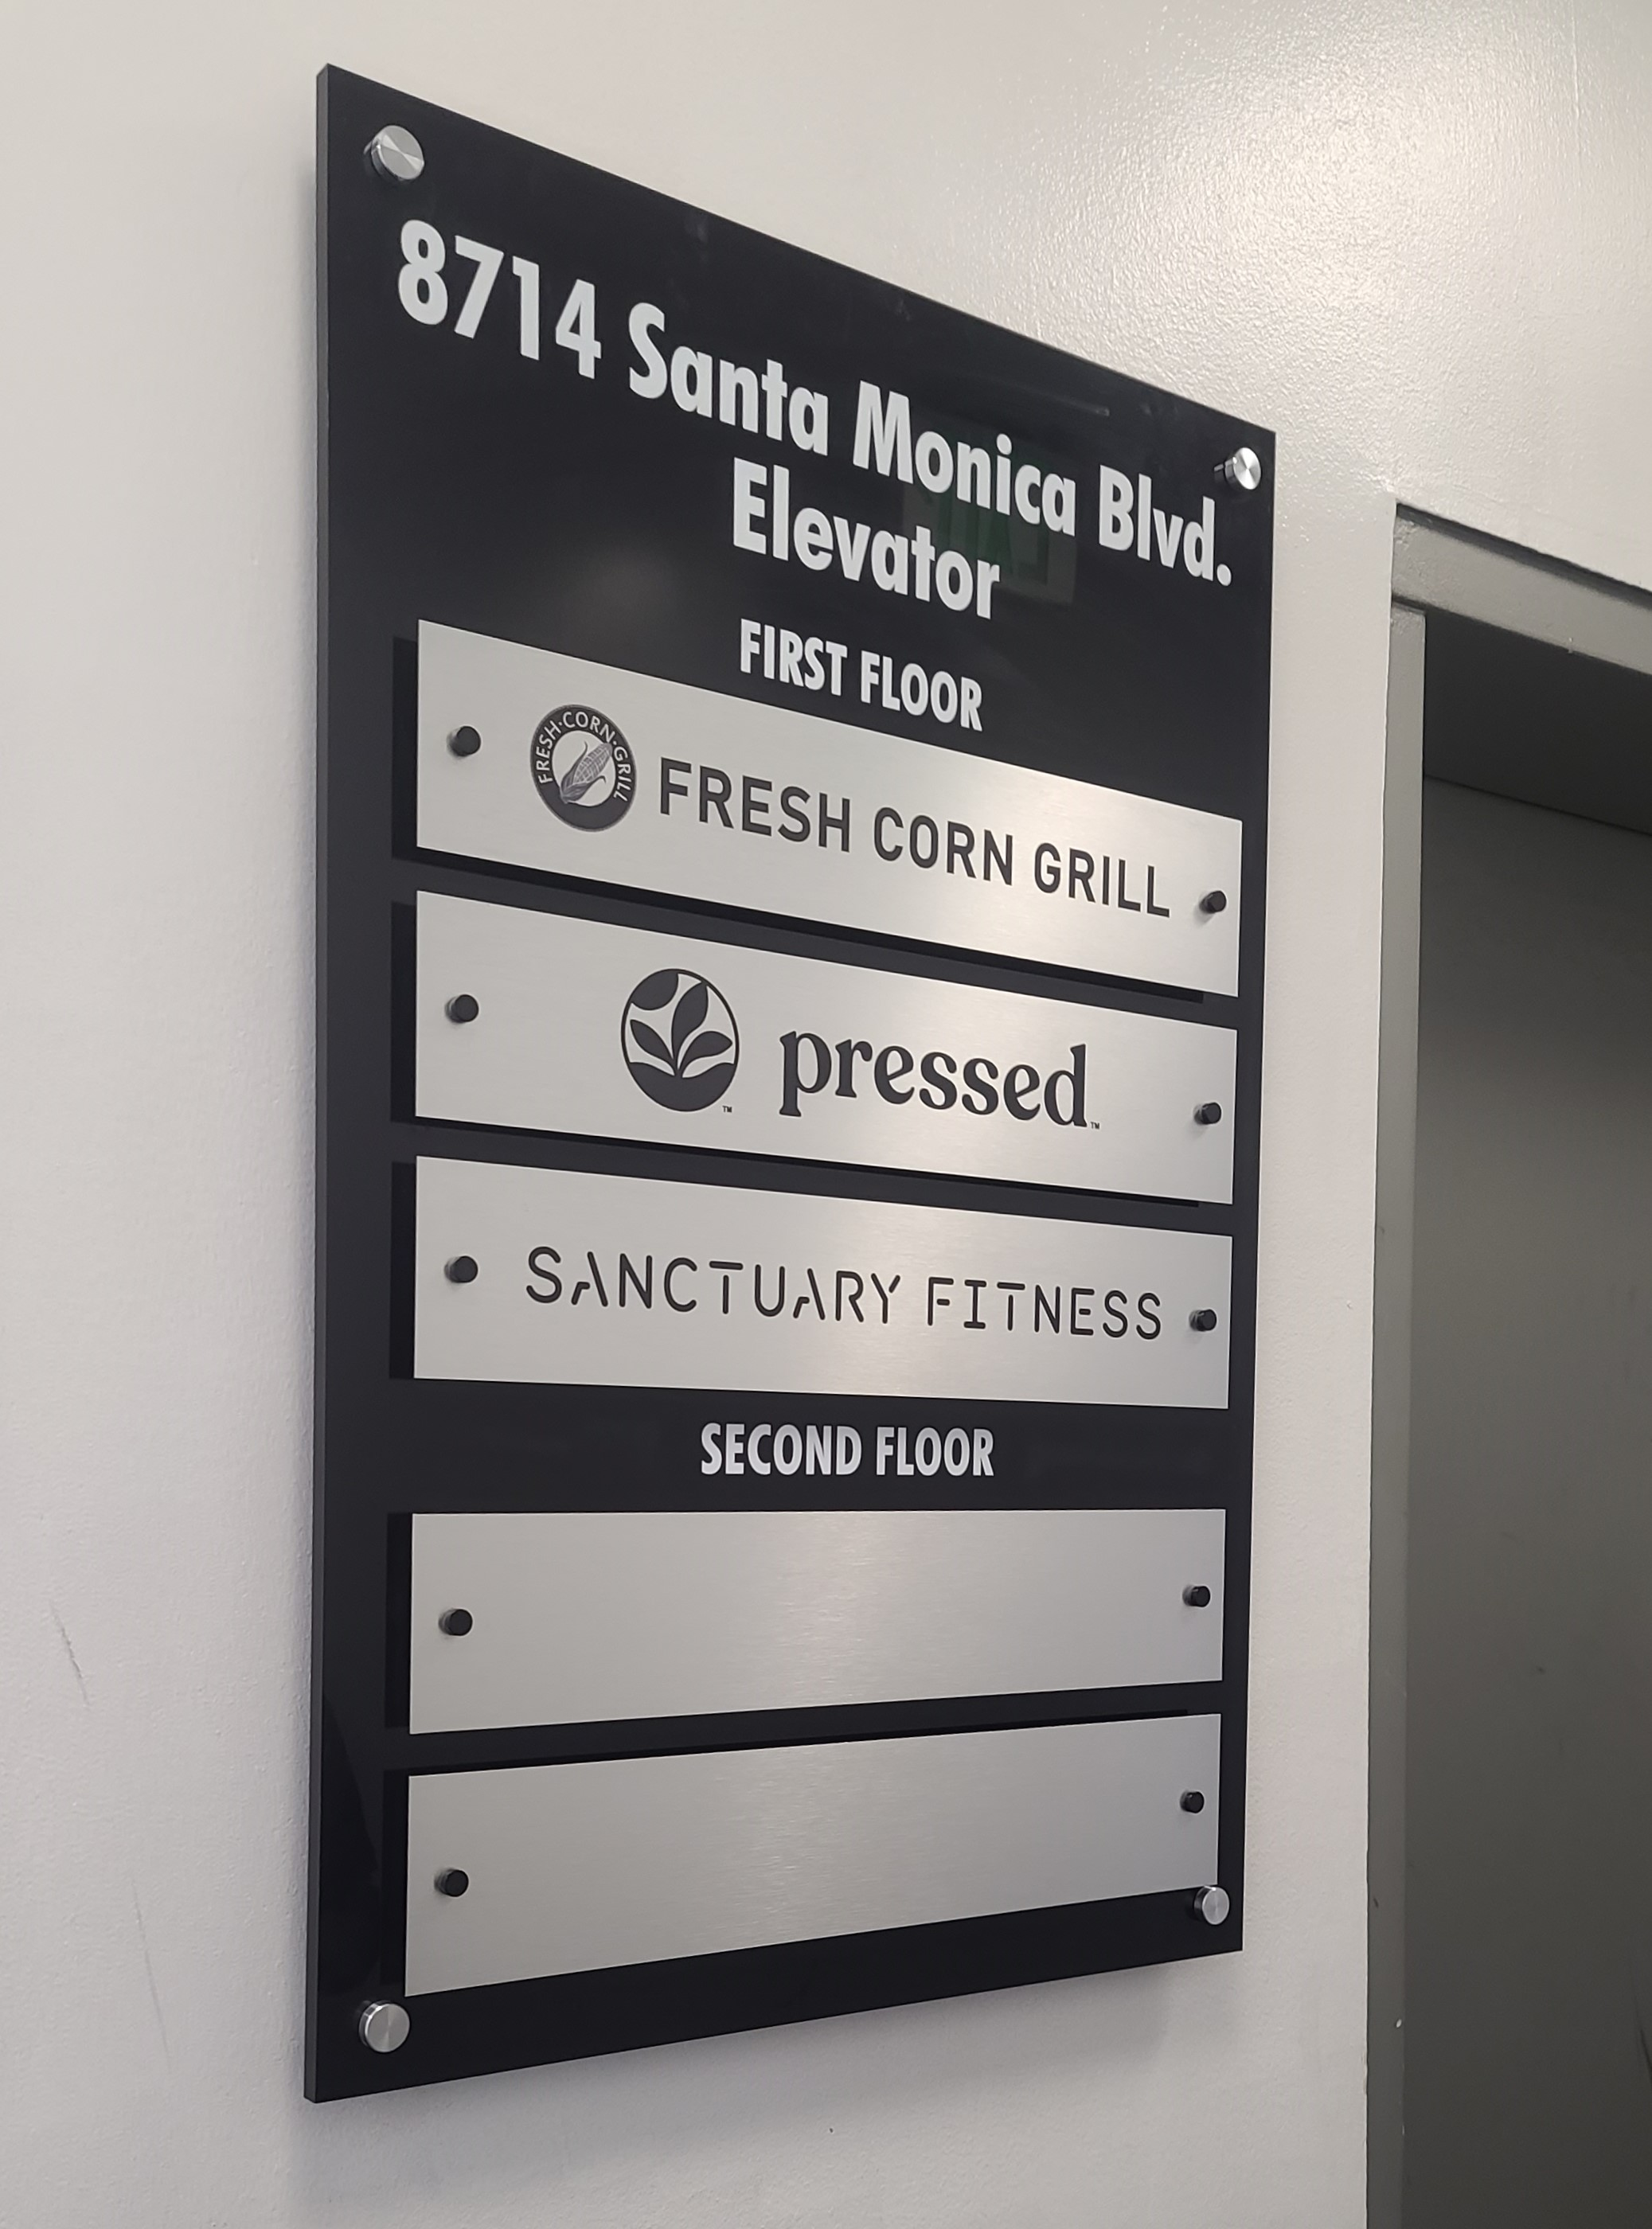 Directory signs we fabricated and installed for Ronco Investments Inc. making navigation easier for customers in their Beverly Hills establishment.